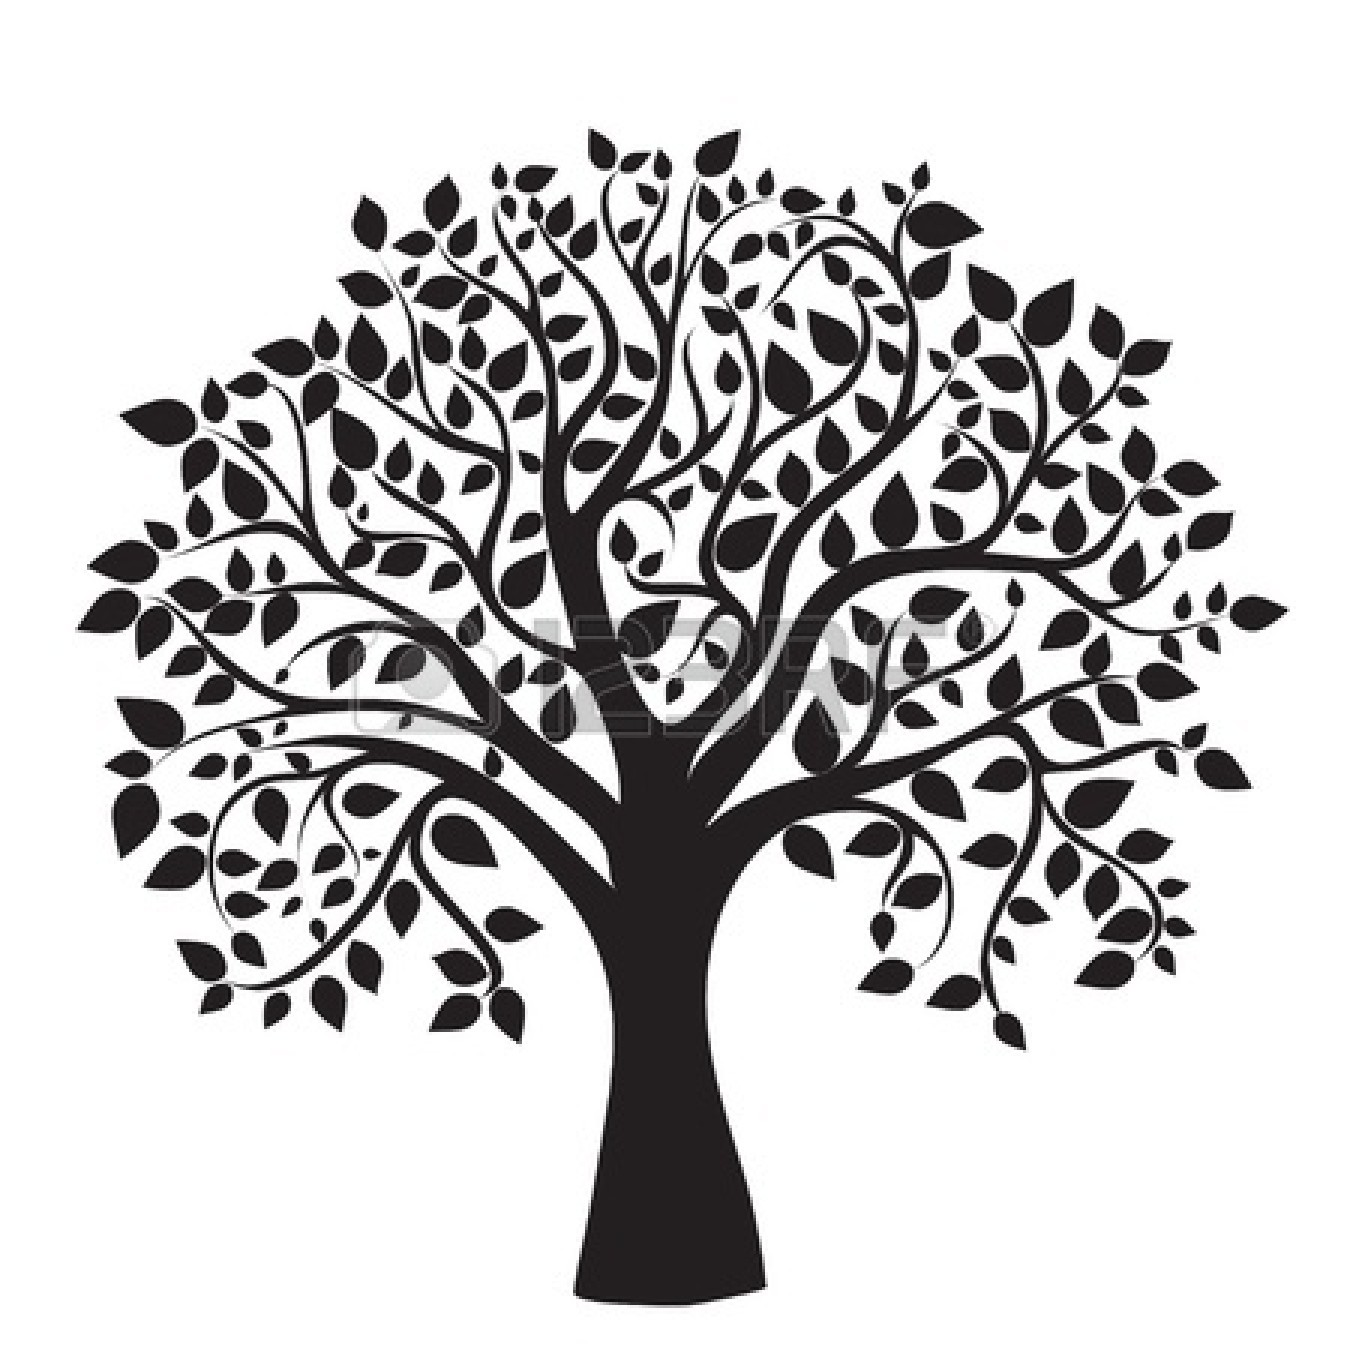 Family tree family black and white clipart clipart kid family reunion tree png black